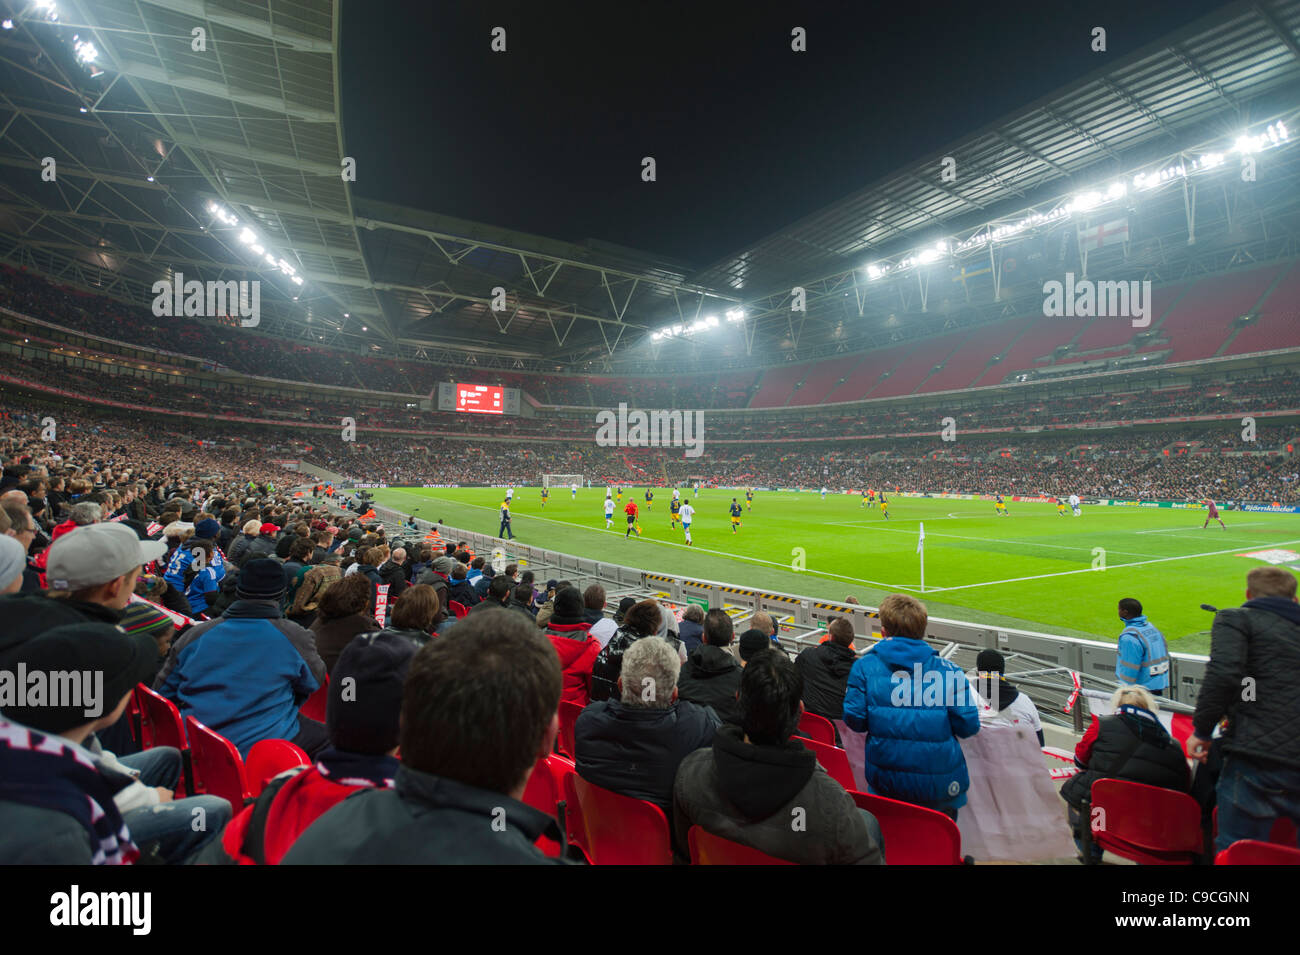 The interior of the new Wembley Stadium during a friendly evening international football match. (England vs Sweden - Stock Image